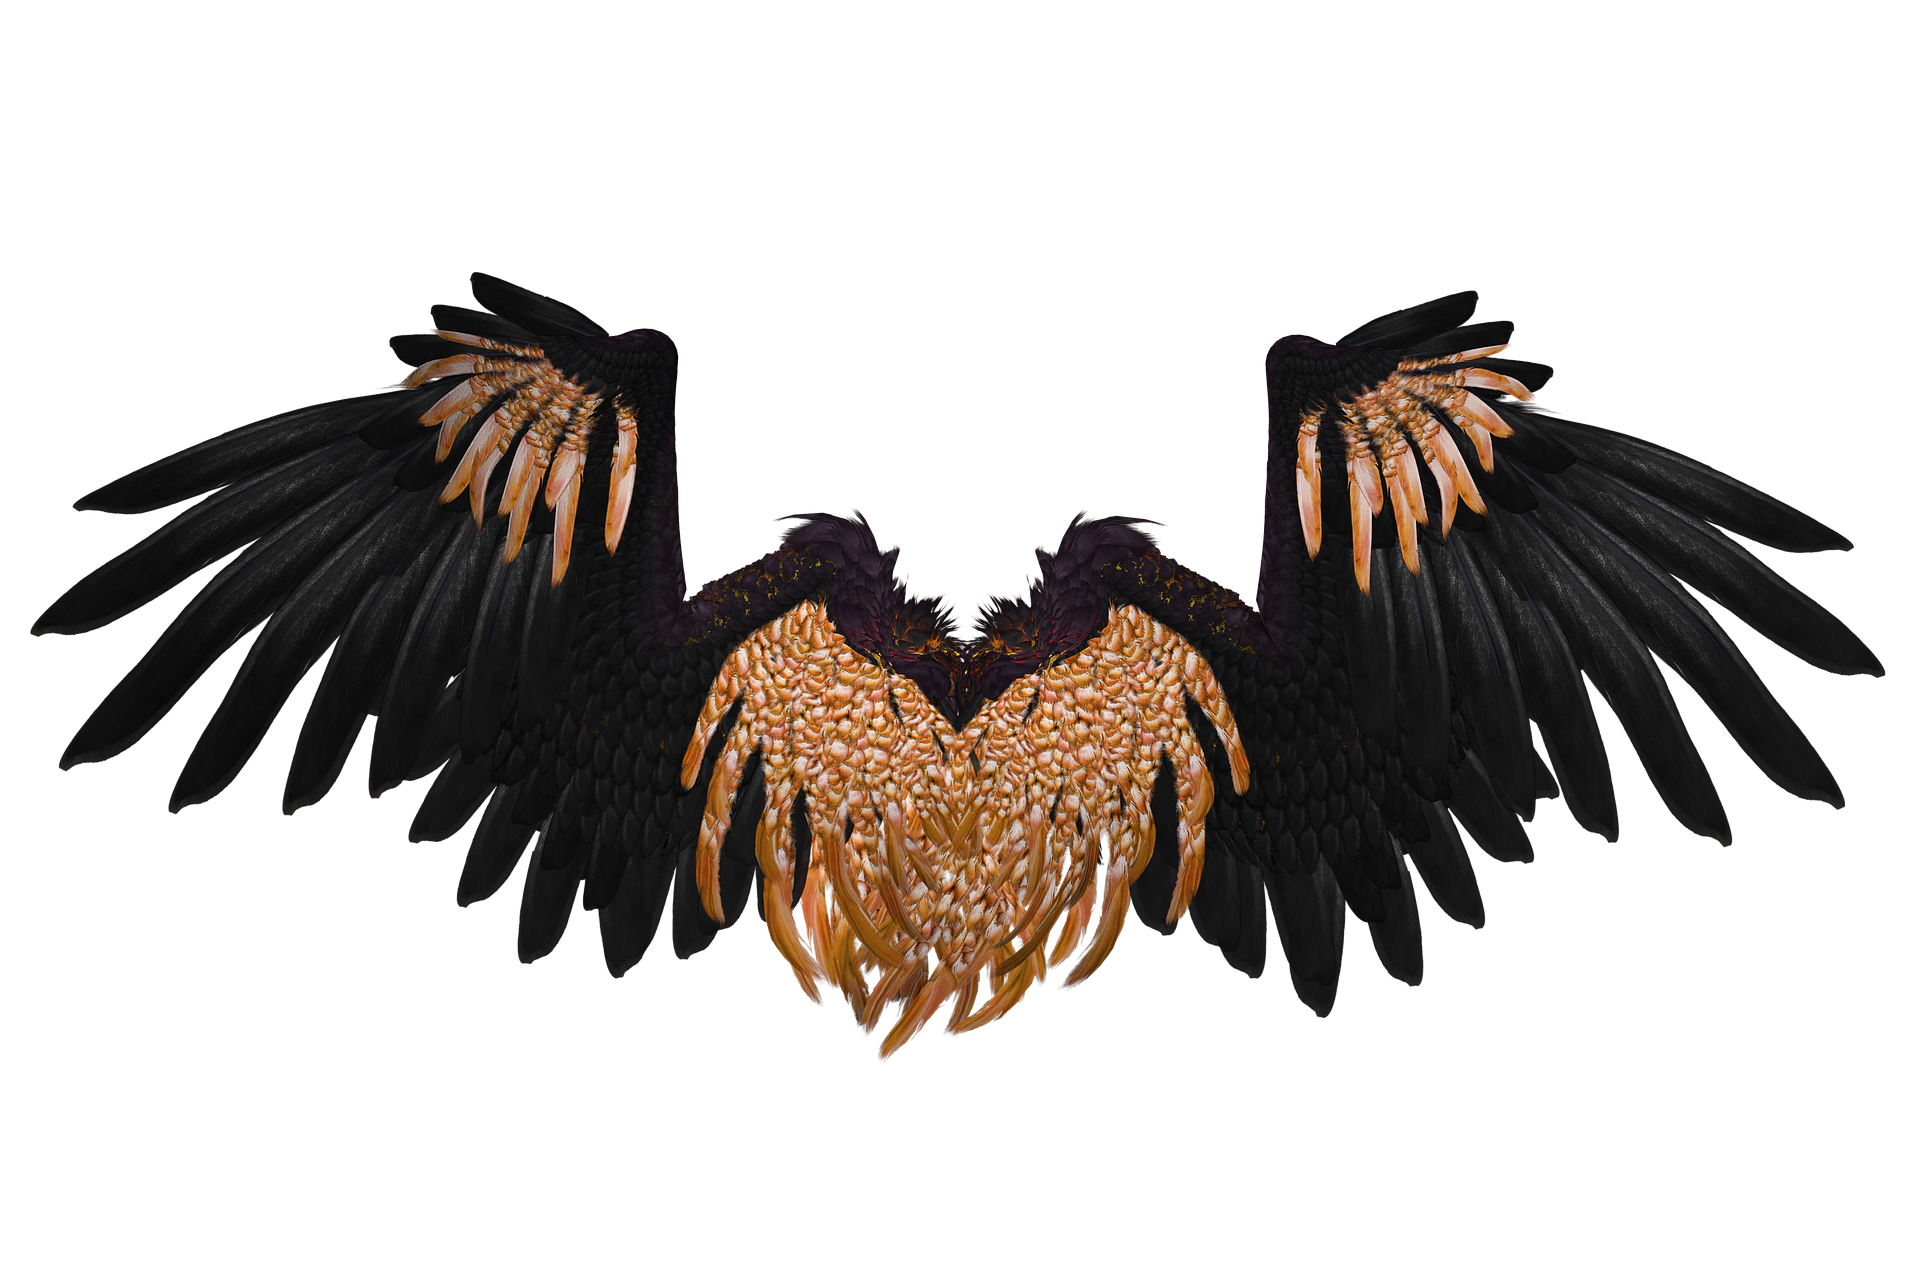 Angel wing d computer. Devil clipart wings